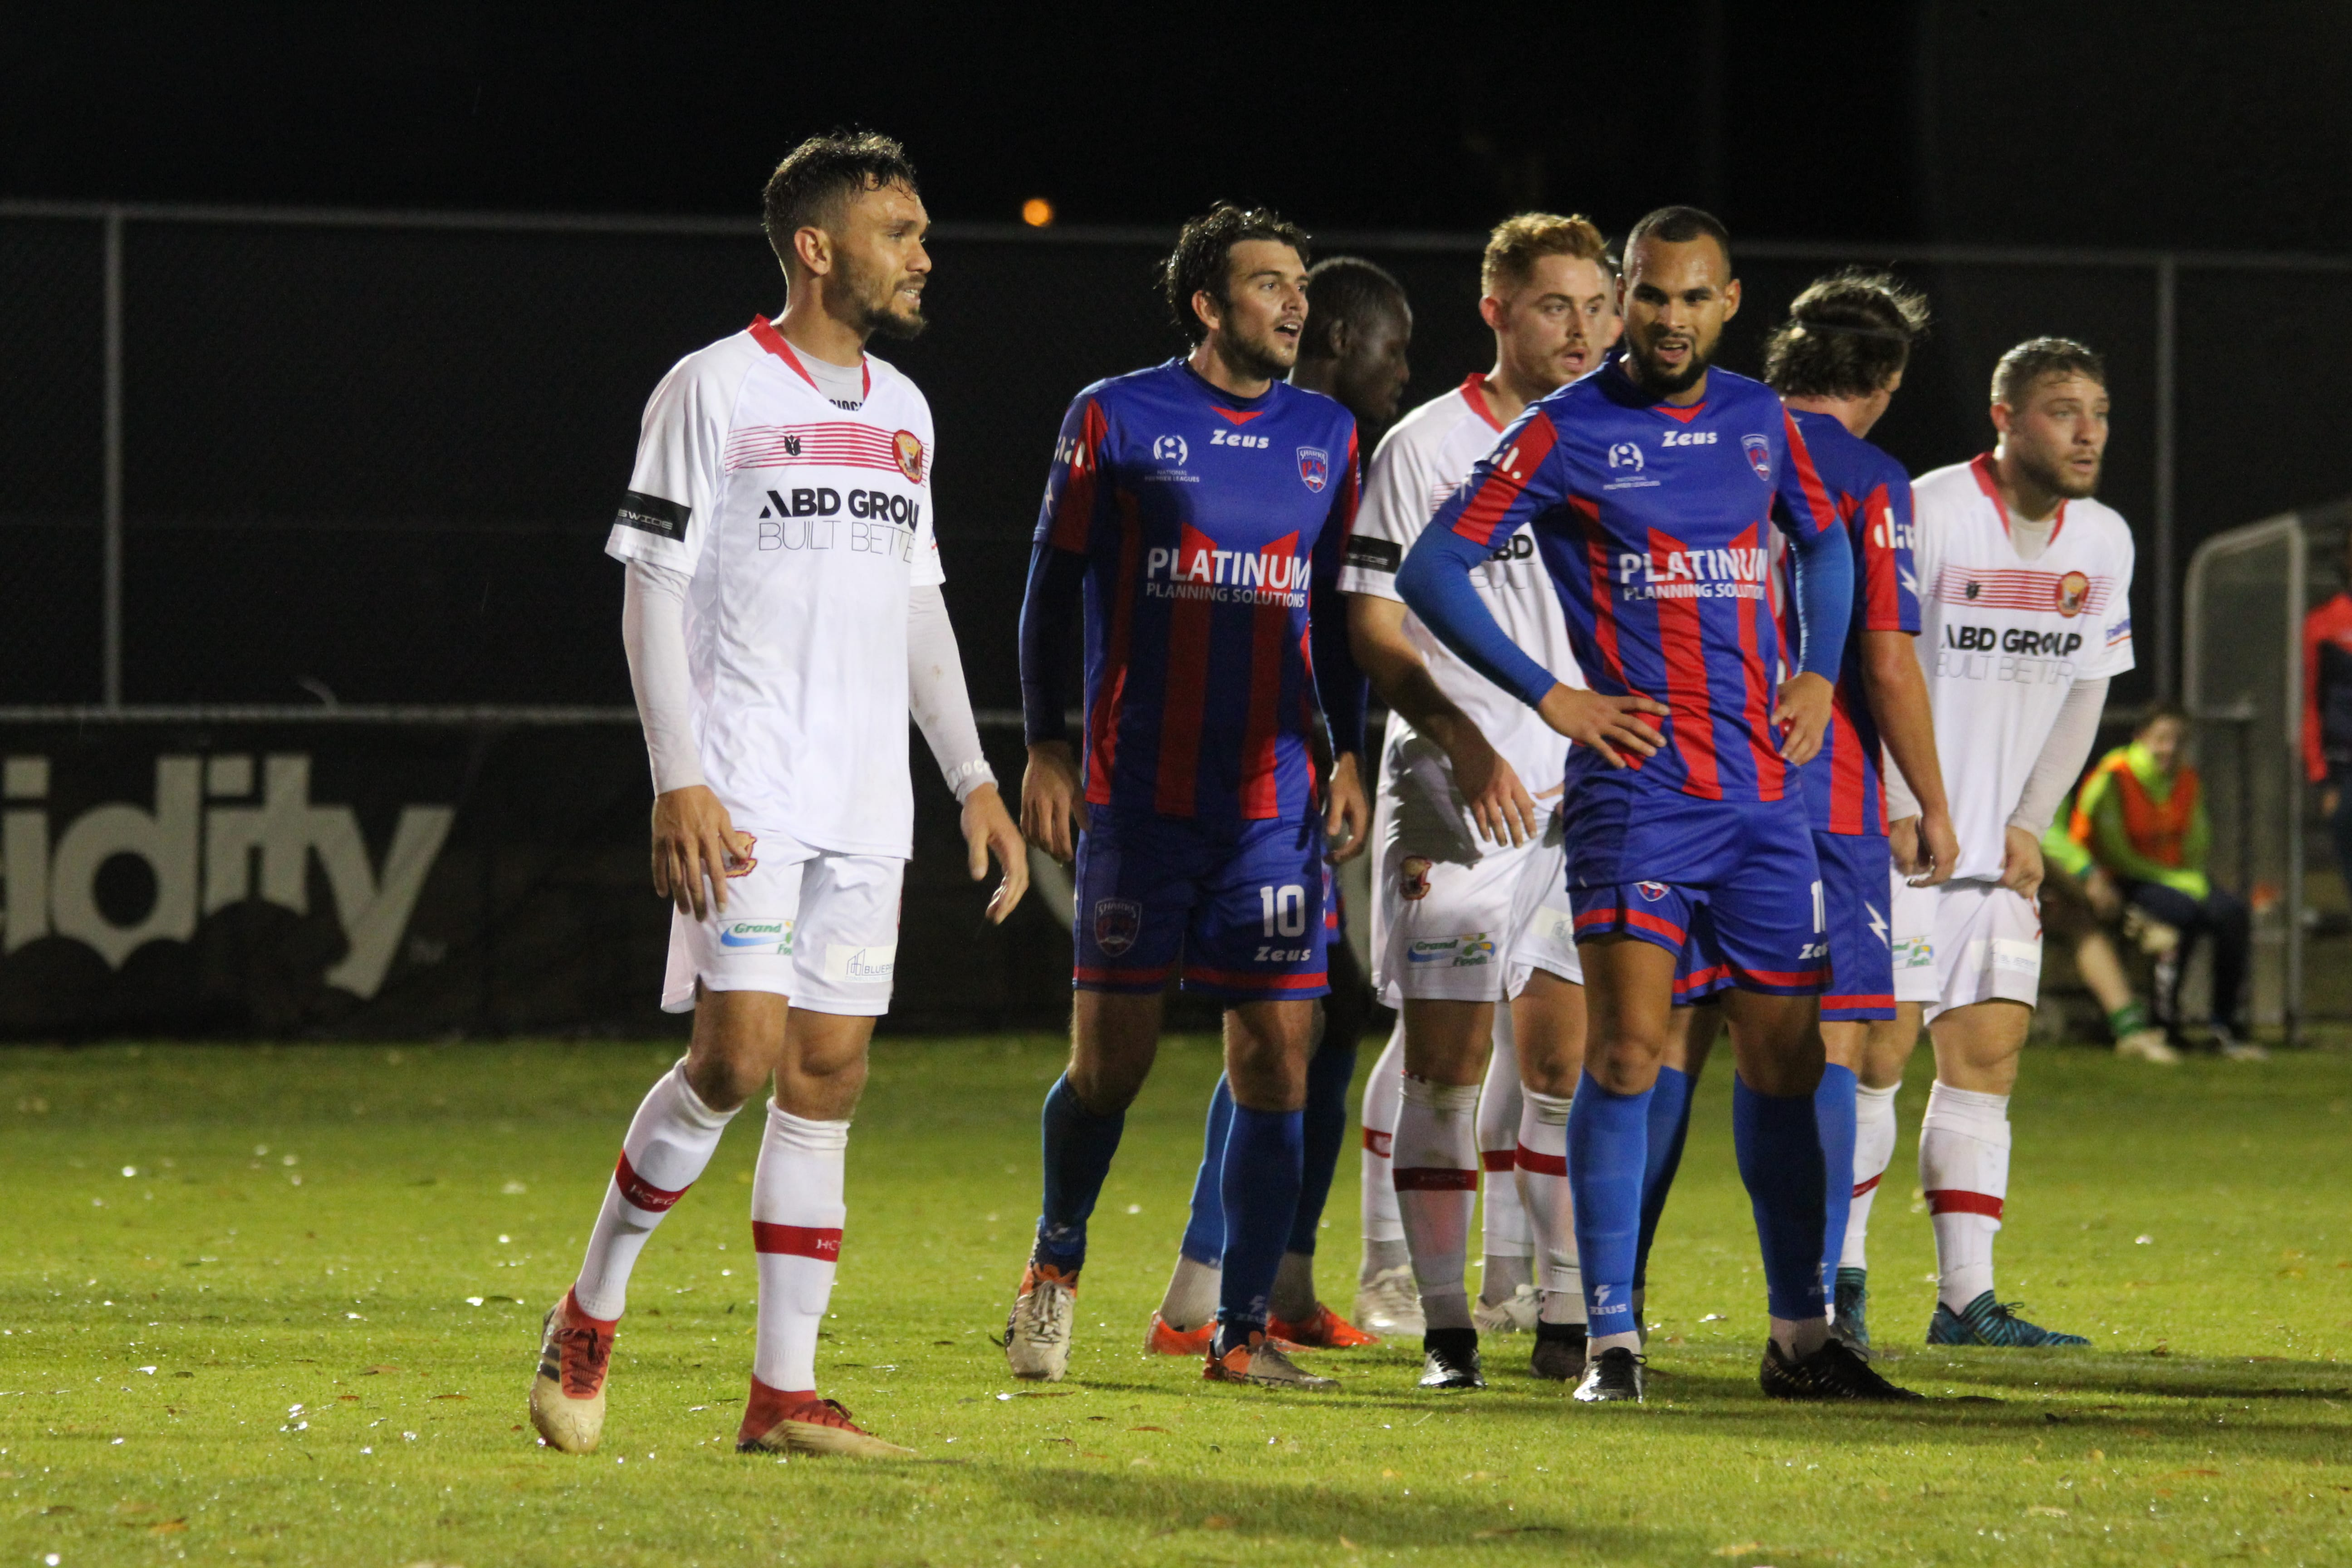 Round 7 Review: Hume City fall short to Port Melbourne in 5-1 defeat